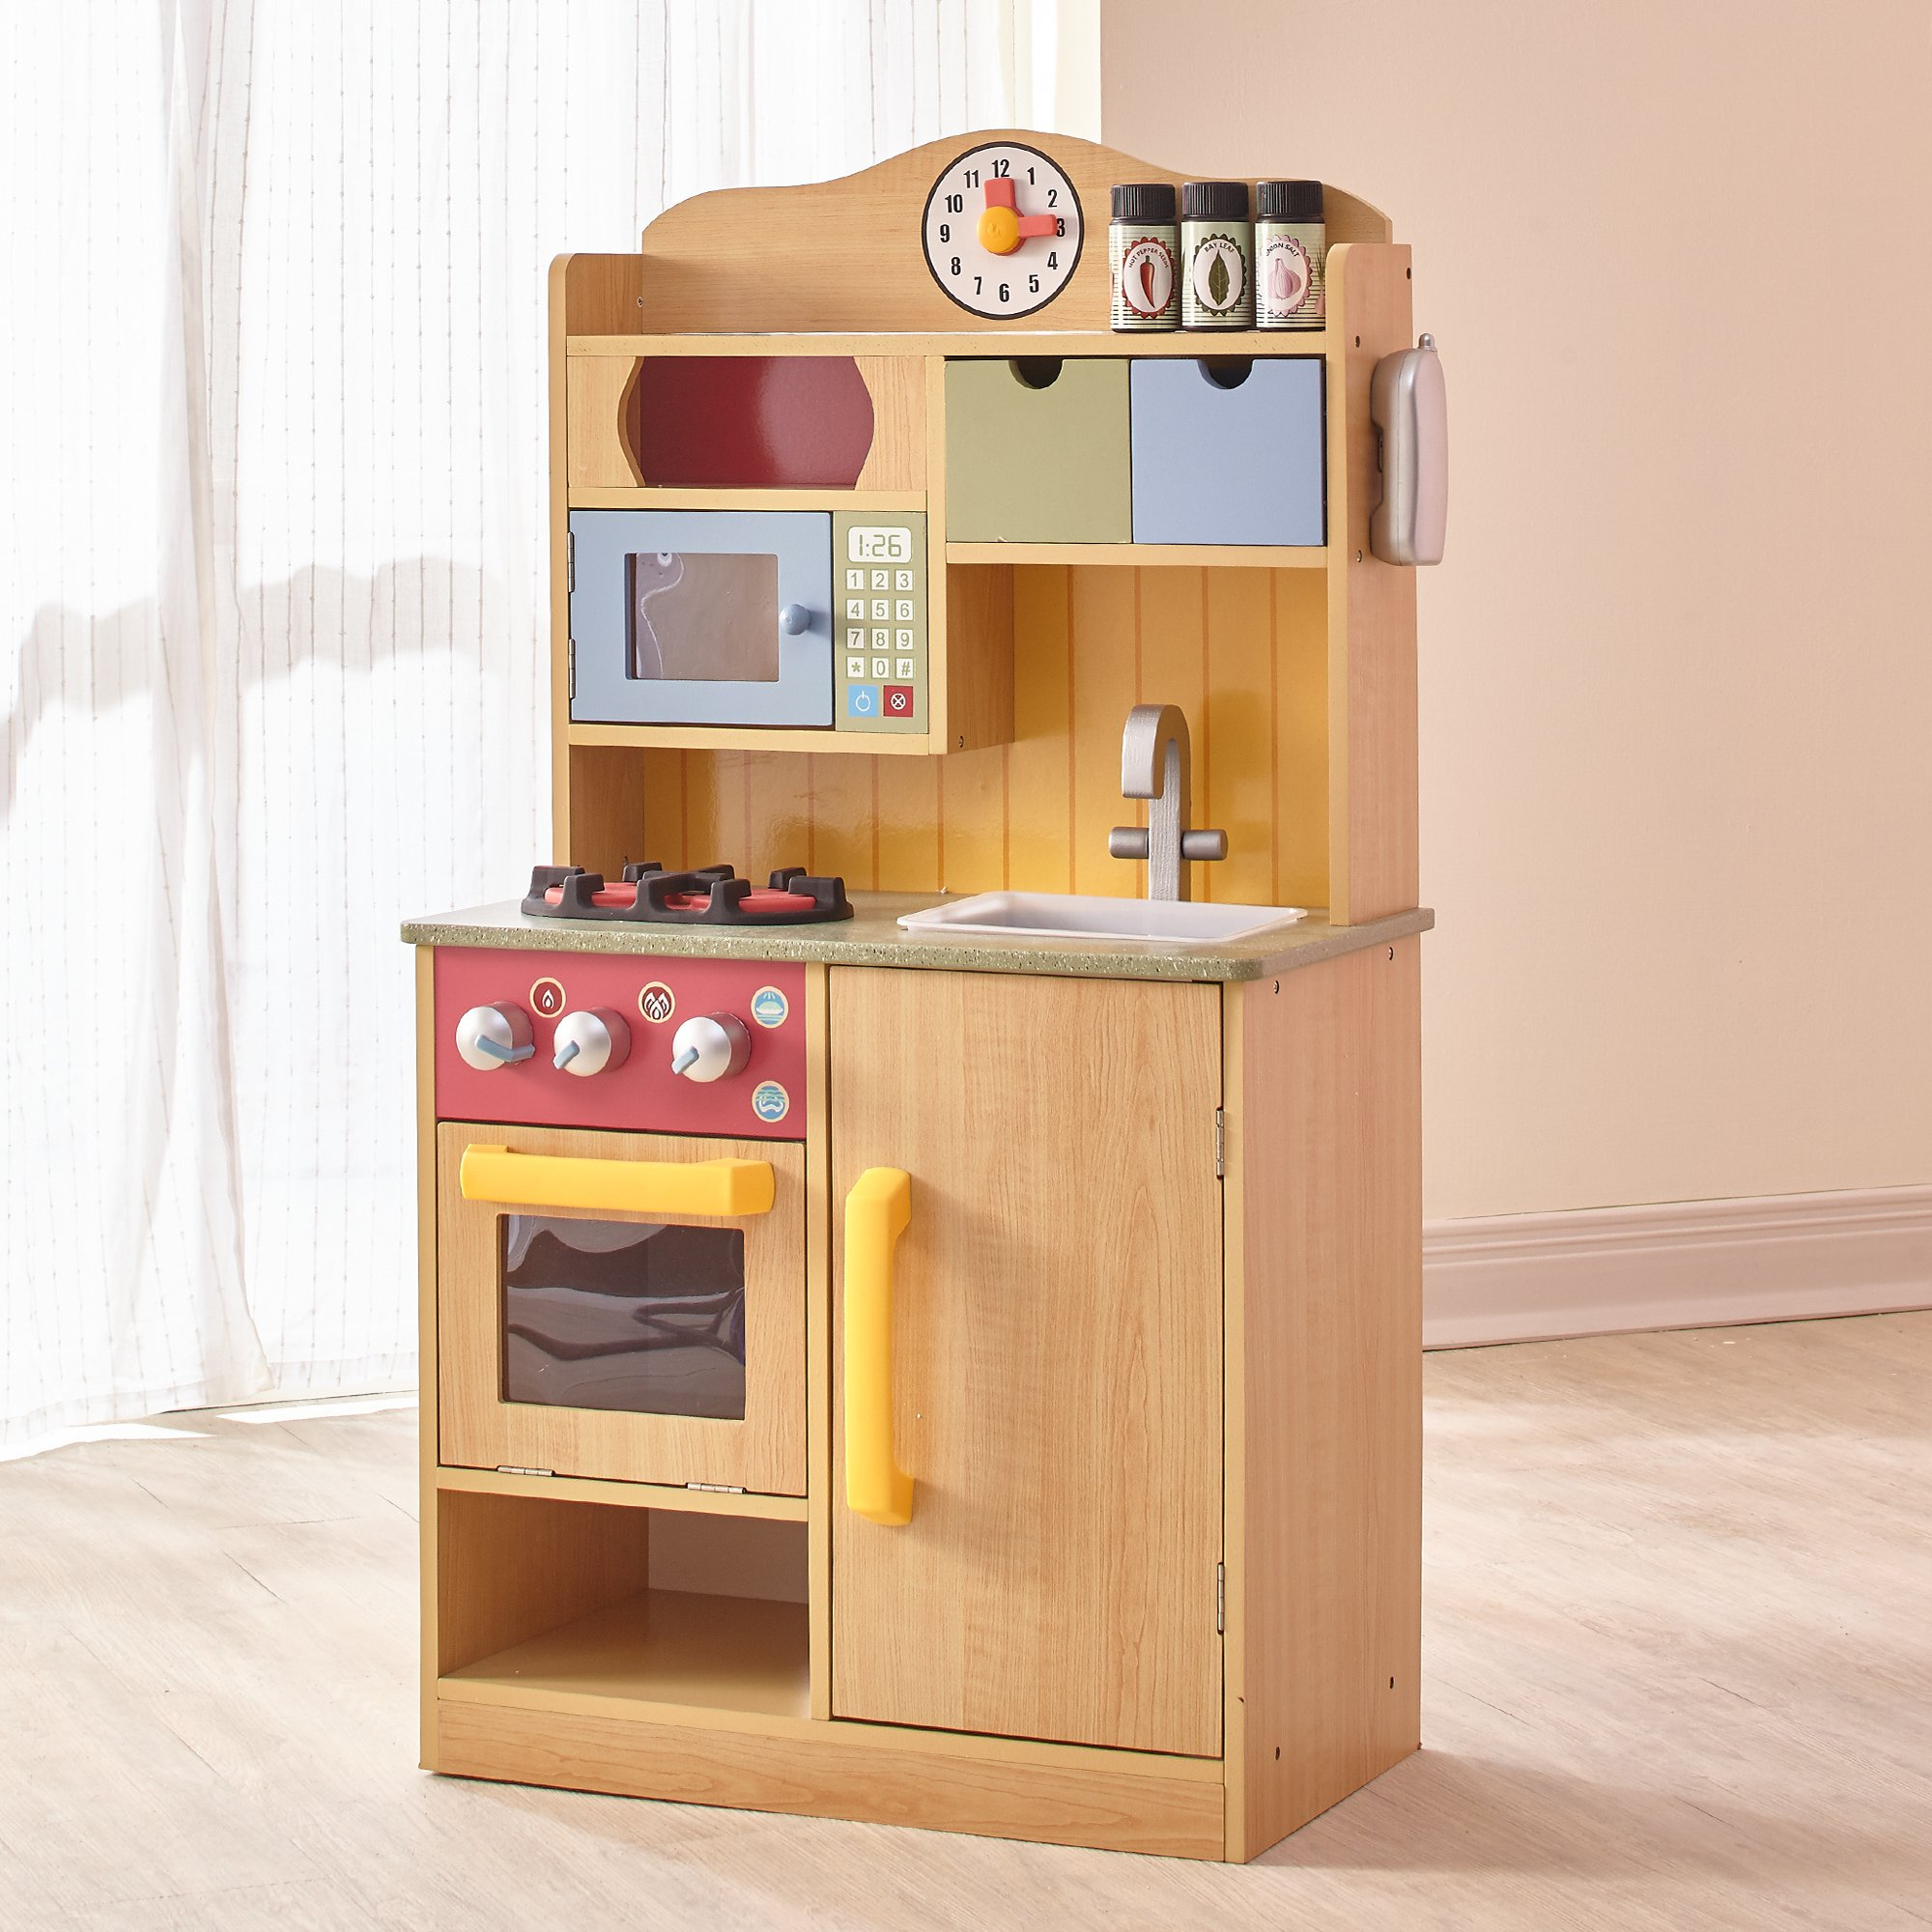 Teamson Kids - Little Chef Florence Classic Kids Play Kitchen | Toddler Pretend Play Set with Accessories - Wood Grain